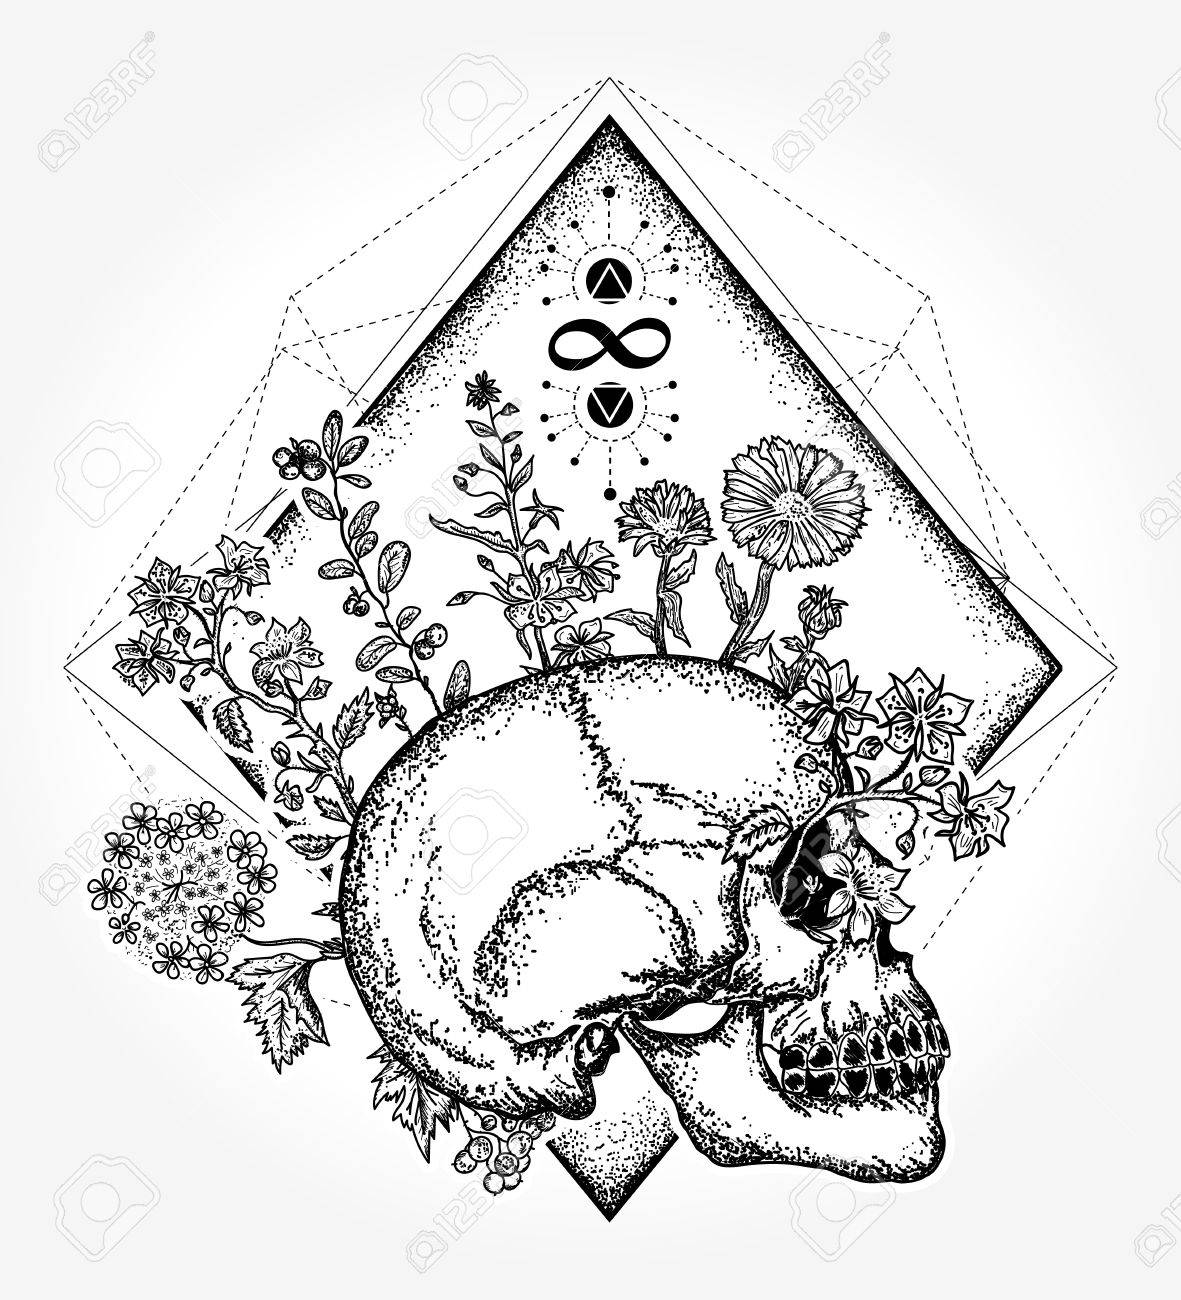 1181x1300 Magic Skull Tattoo And T Shirt Design. Human Skull Through Which